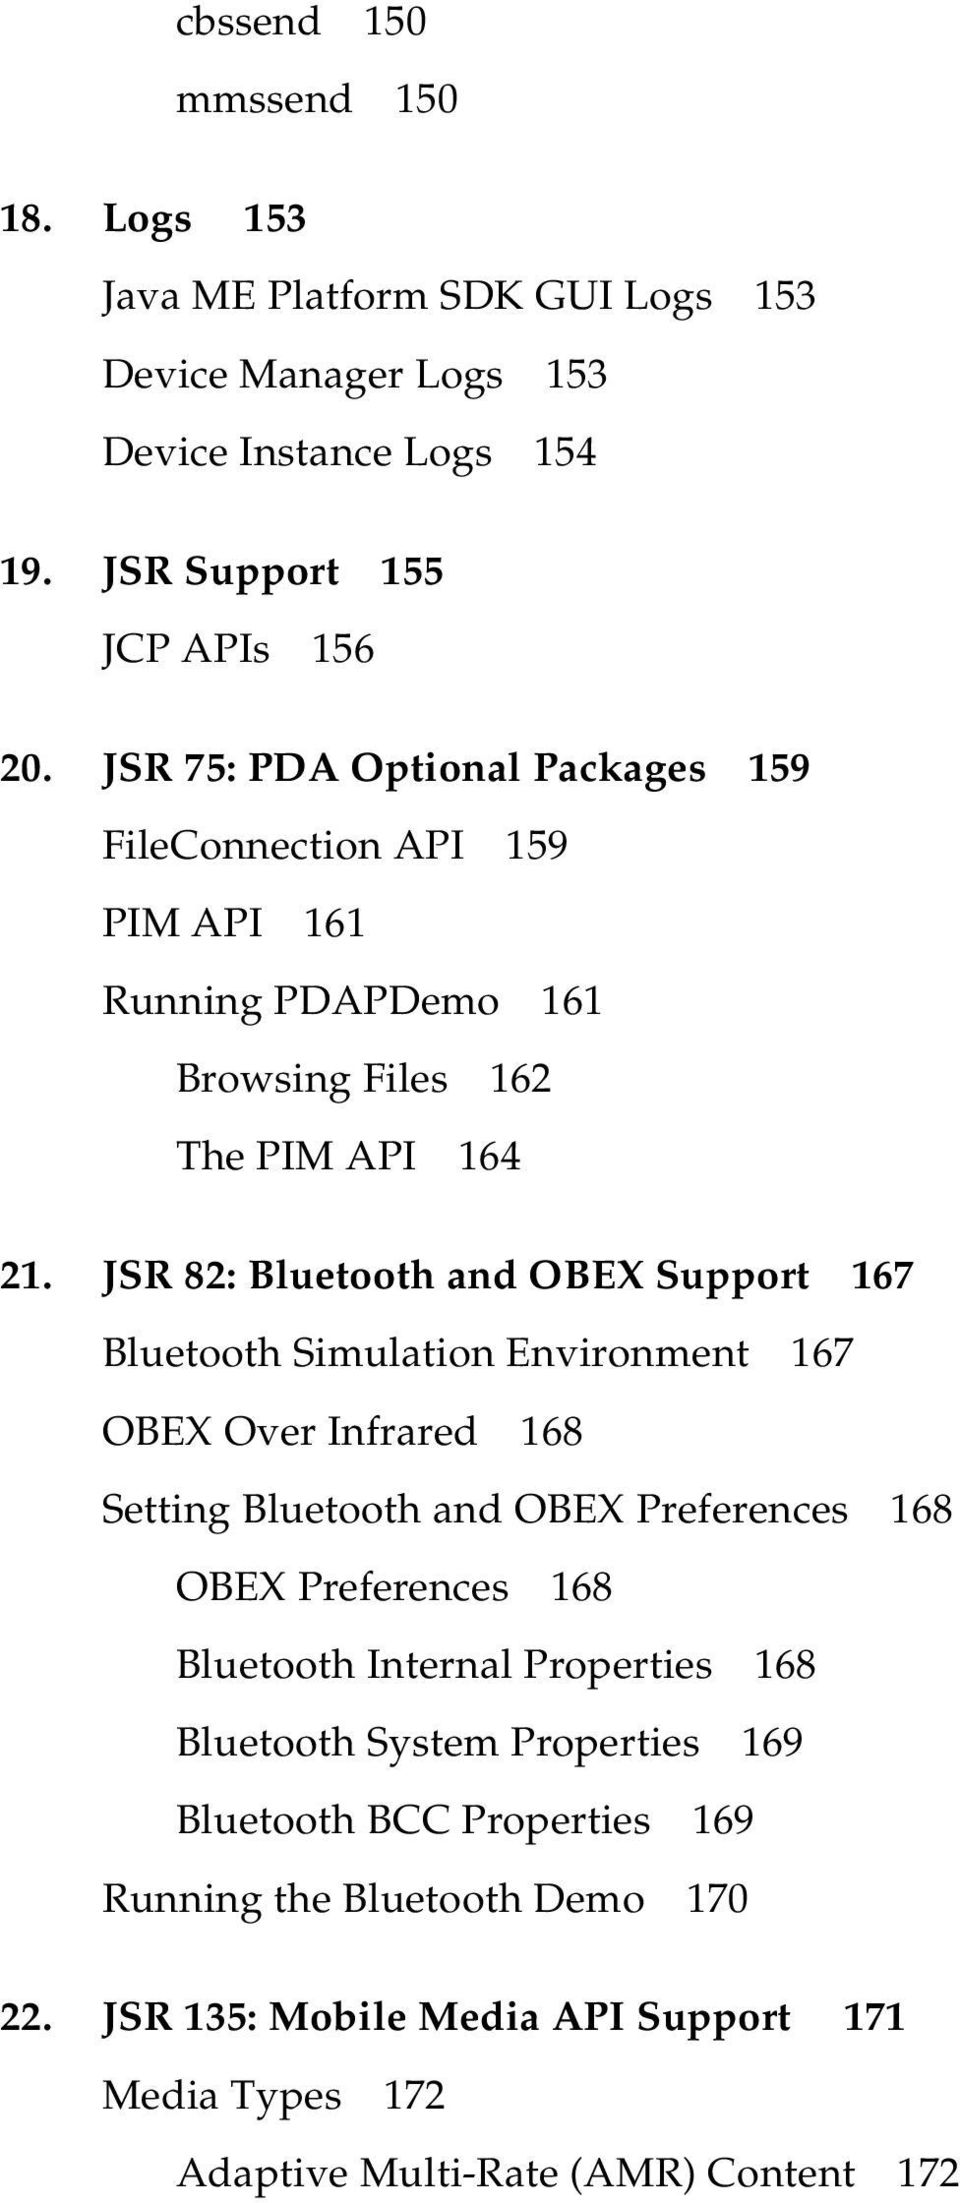 JSR 82: Bluetooth and OBEX Support 167 Bluetooth Simulation Environment 167 OBEX Over Infrared 168 Setting Bluetooth and OBEX Preferences 168 OBEX Preferences 168